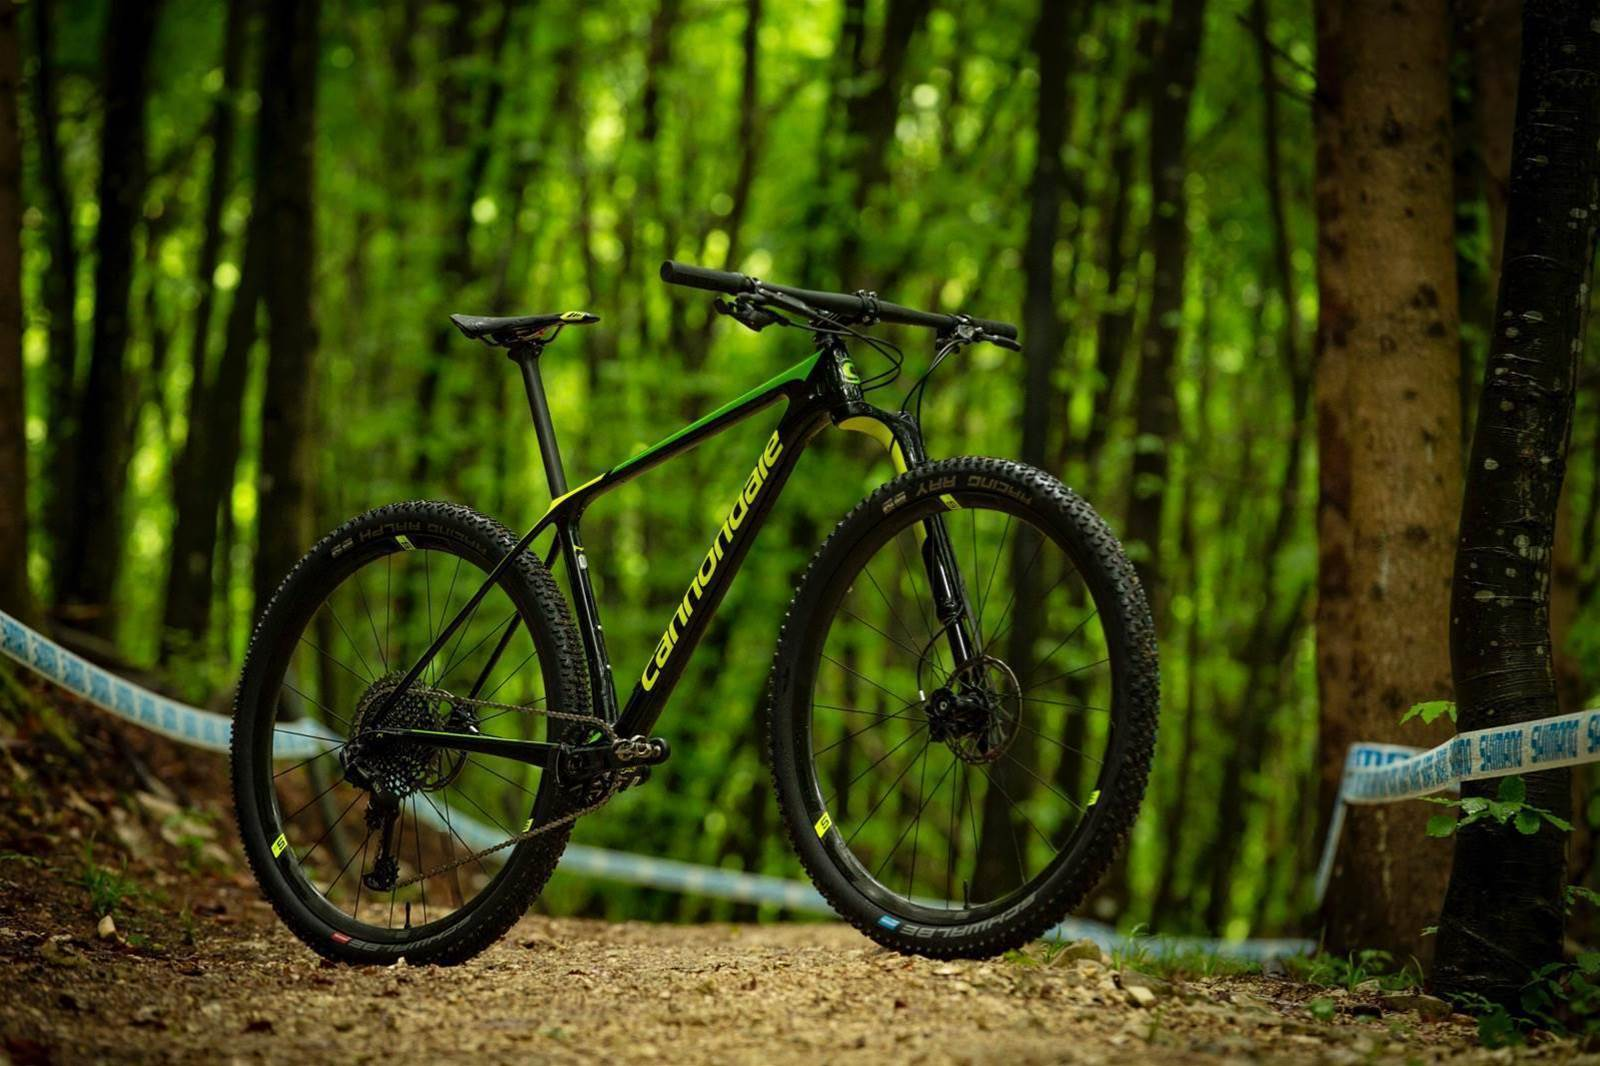 Cannondale's new Lefty Ocho and F-Si hardtail